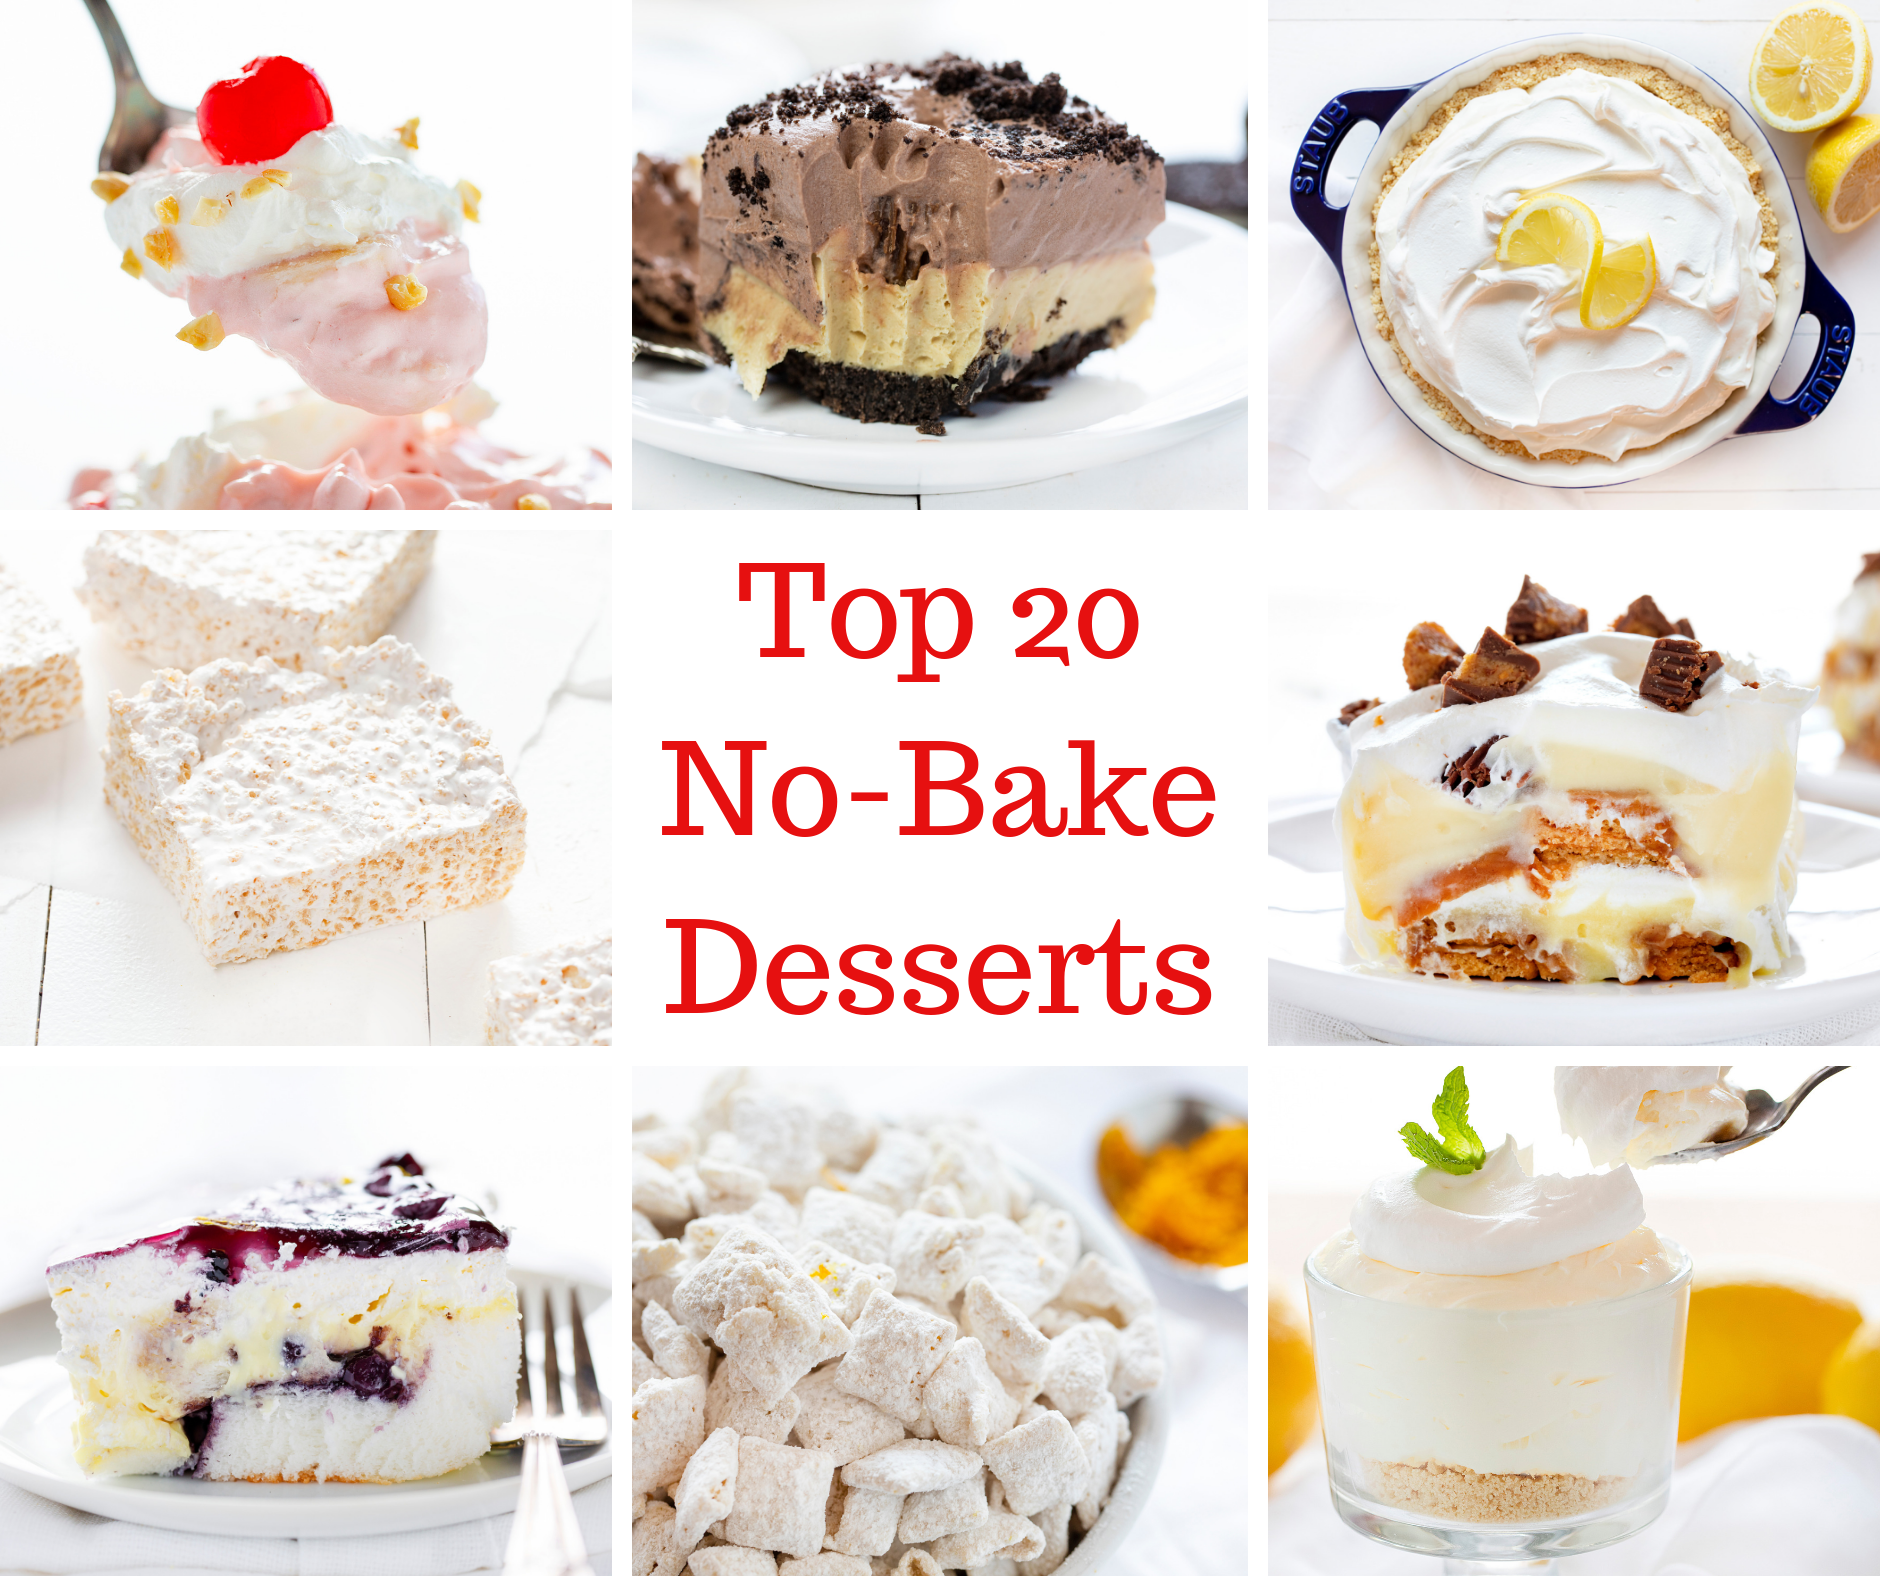 Top 20 No Bake Desserts